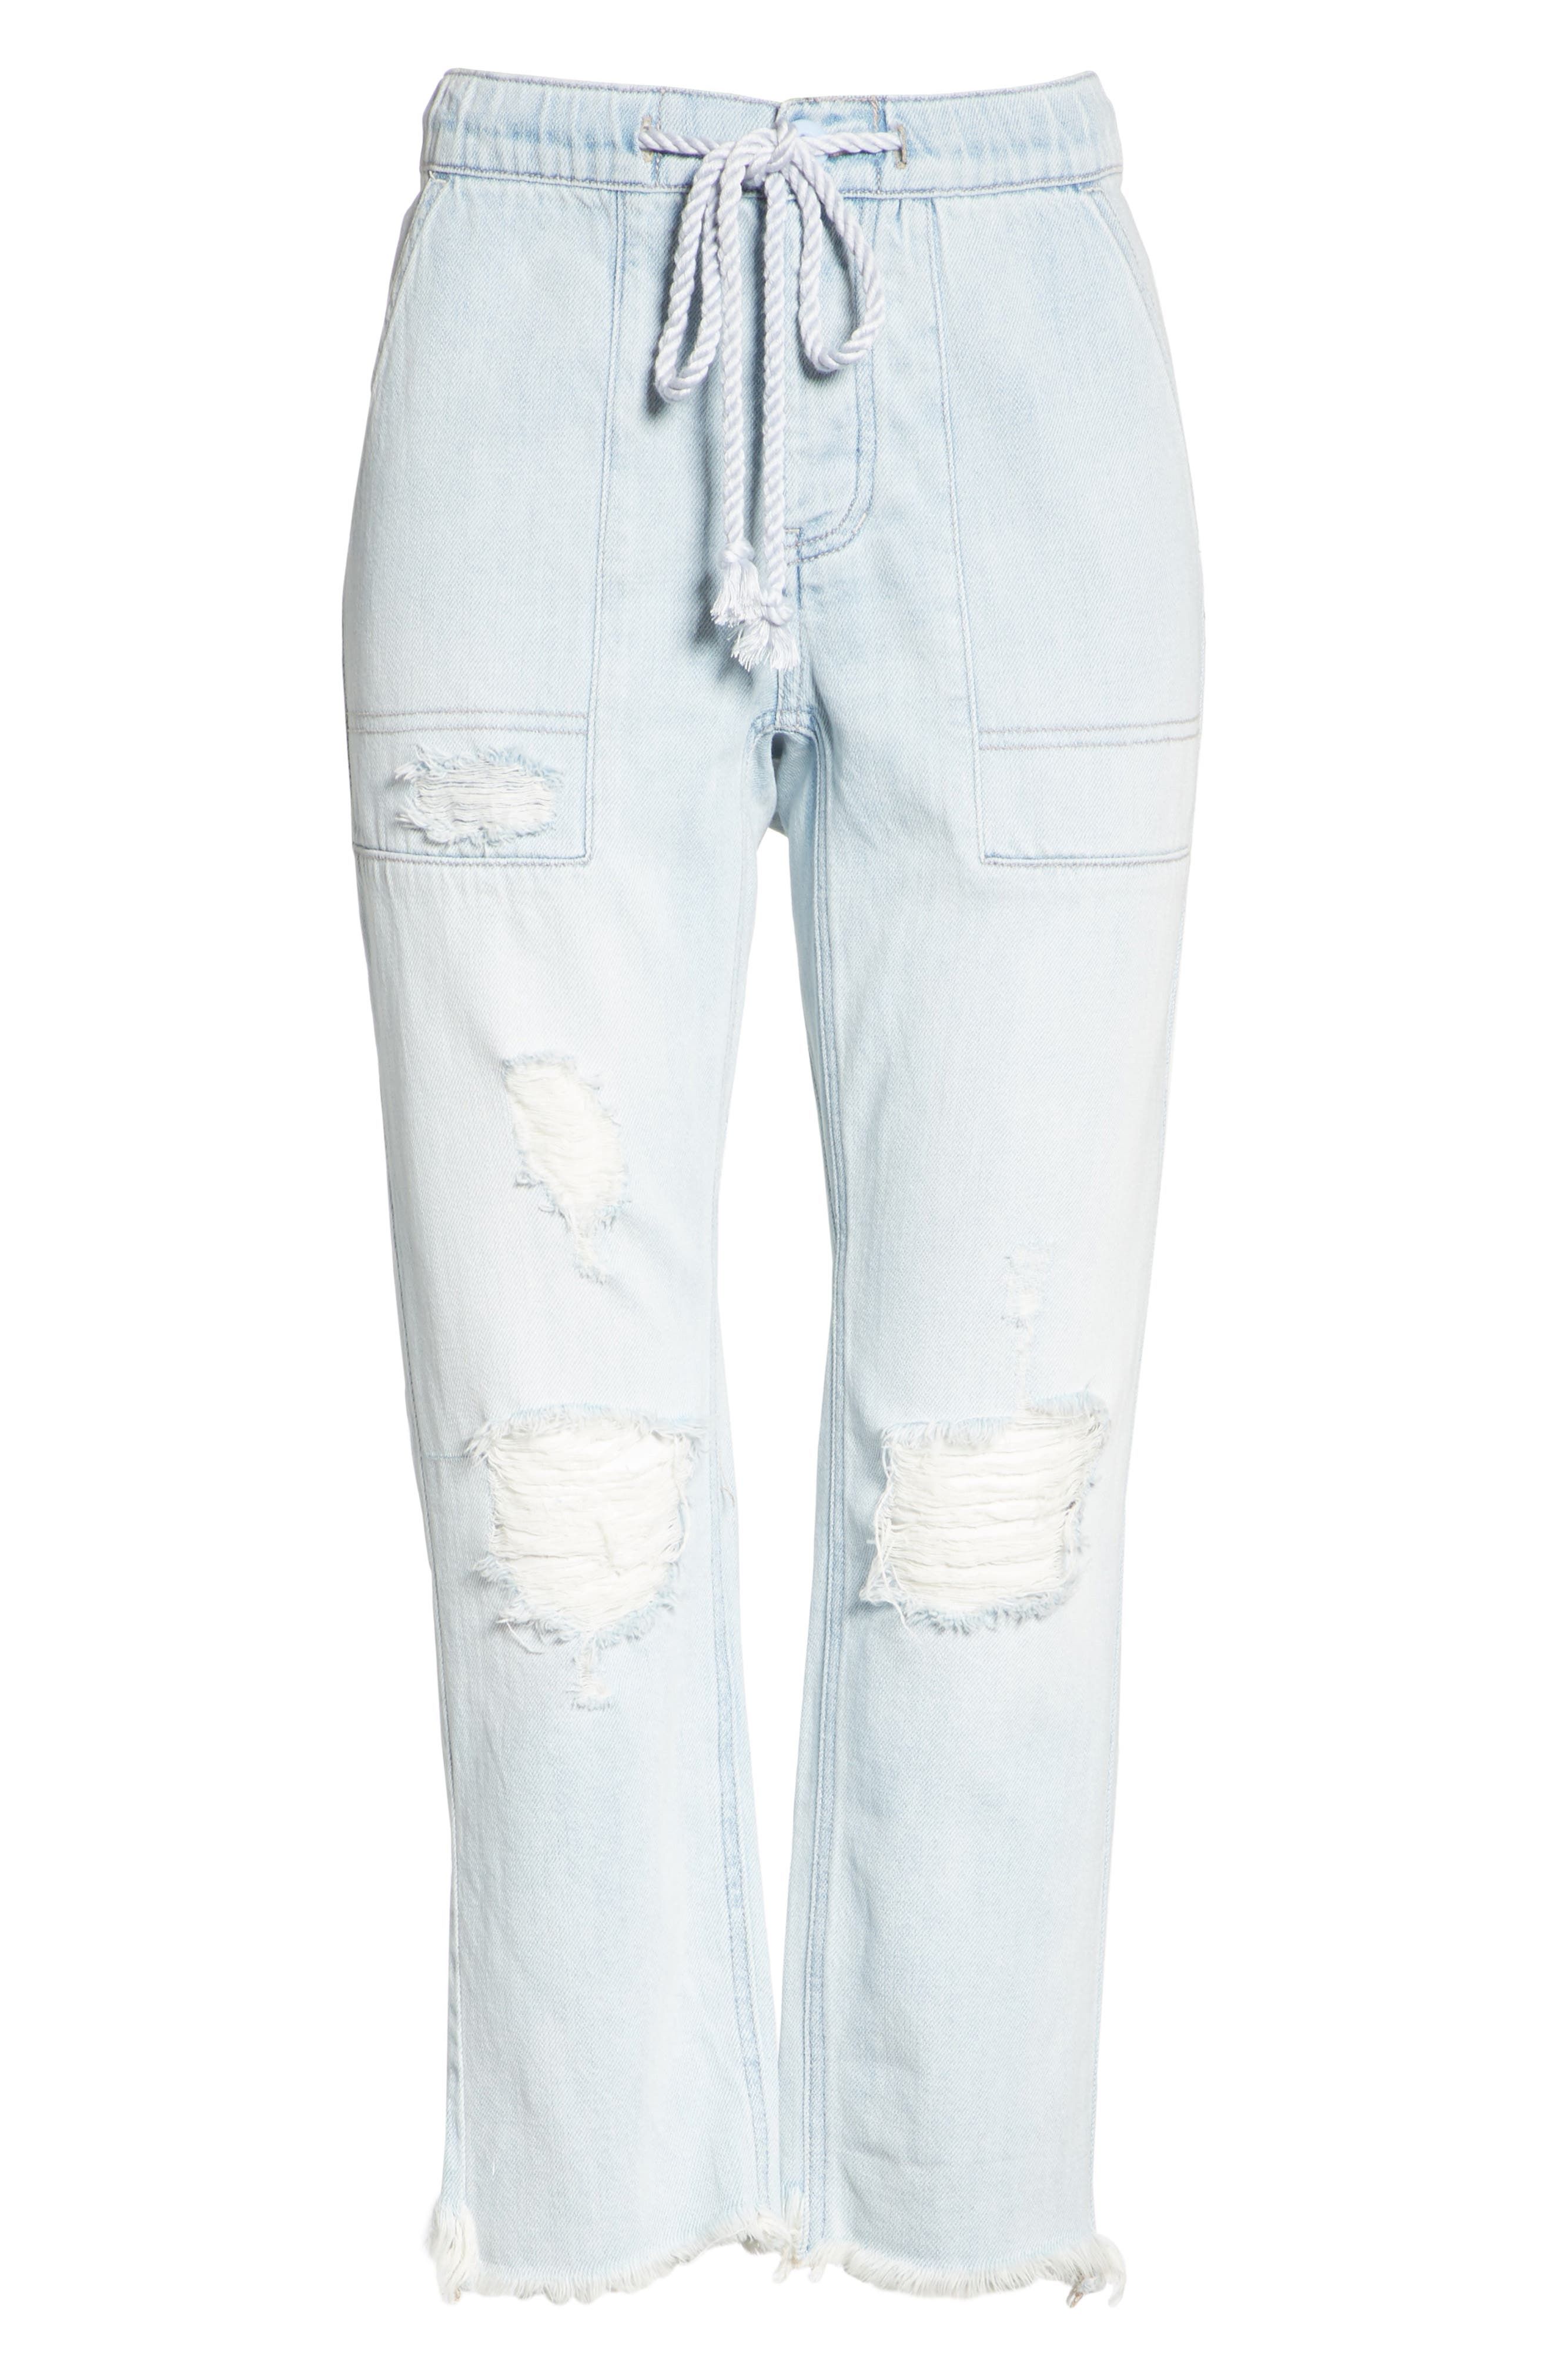 Northern Sky Ripped Crop Jeans,                             Alternate thumbnail 6, color,                             400